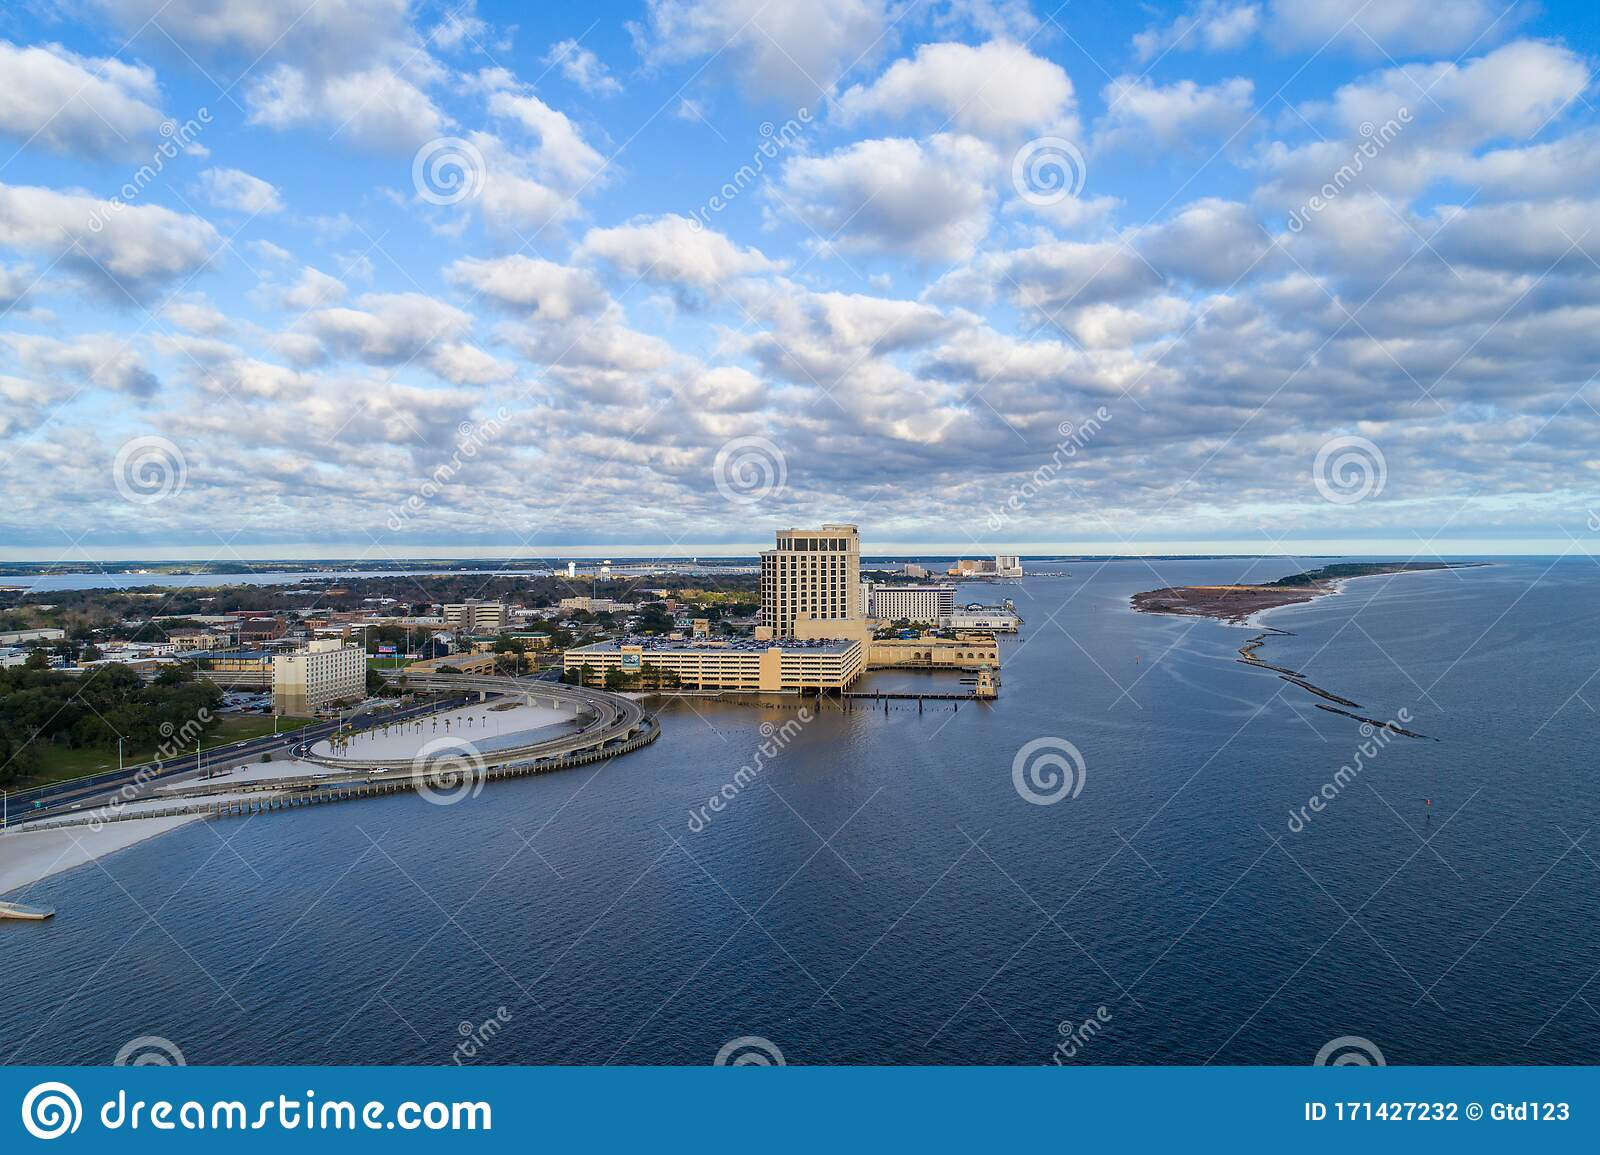 Biloxi Mississippi Beach Stock Photo Image Of Cloudscape 171427232